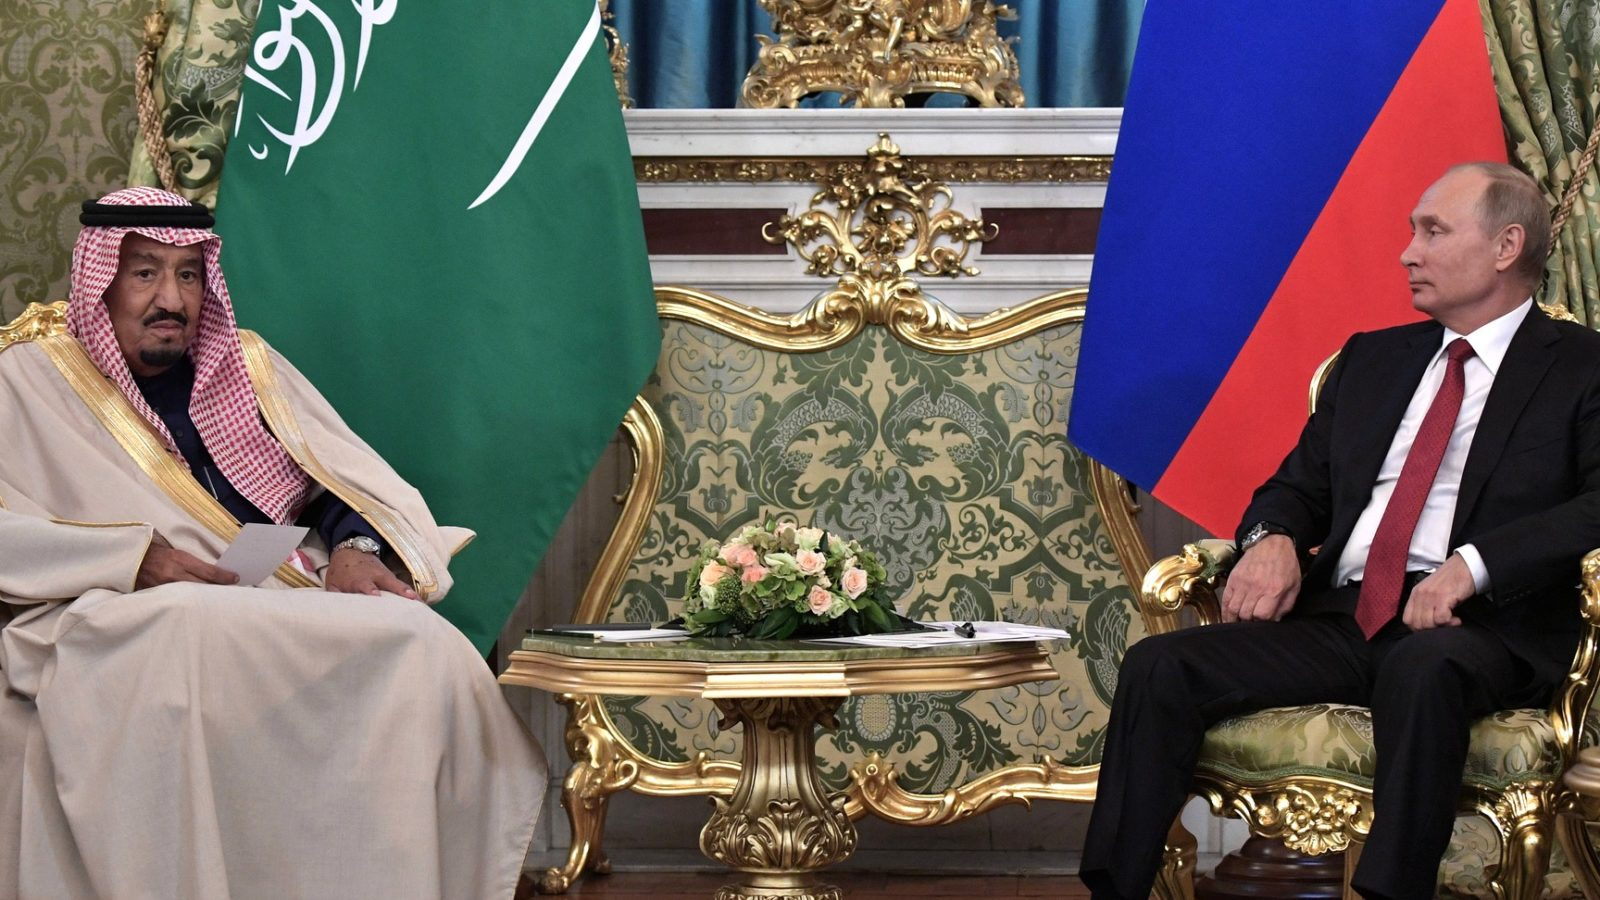 Russian and Saudi state leaders